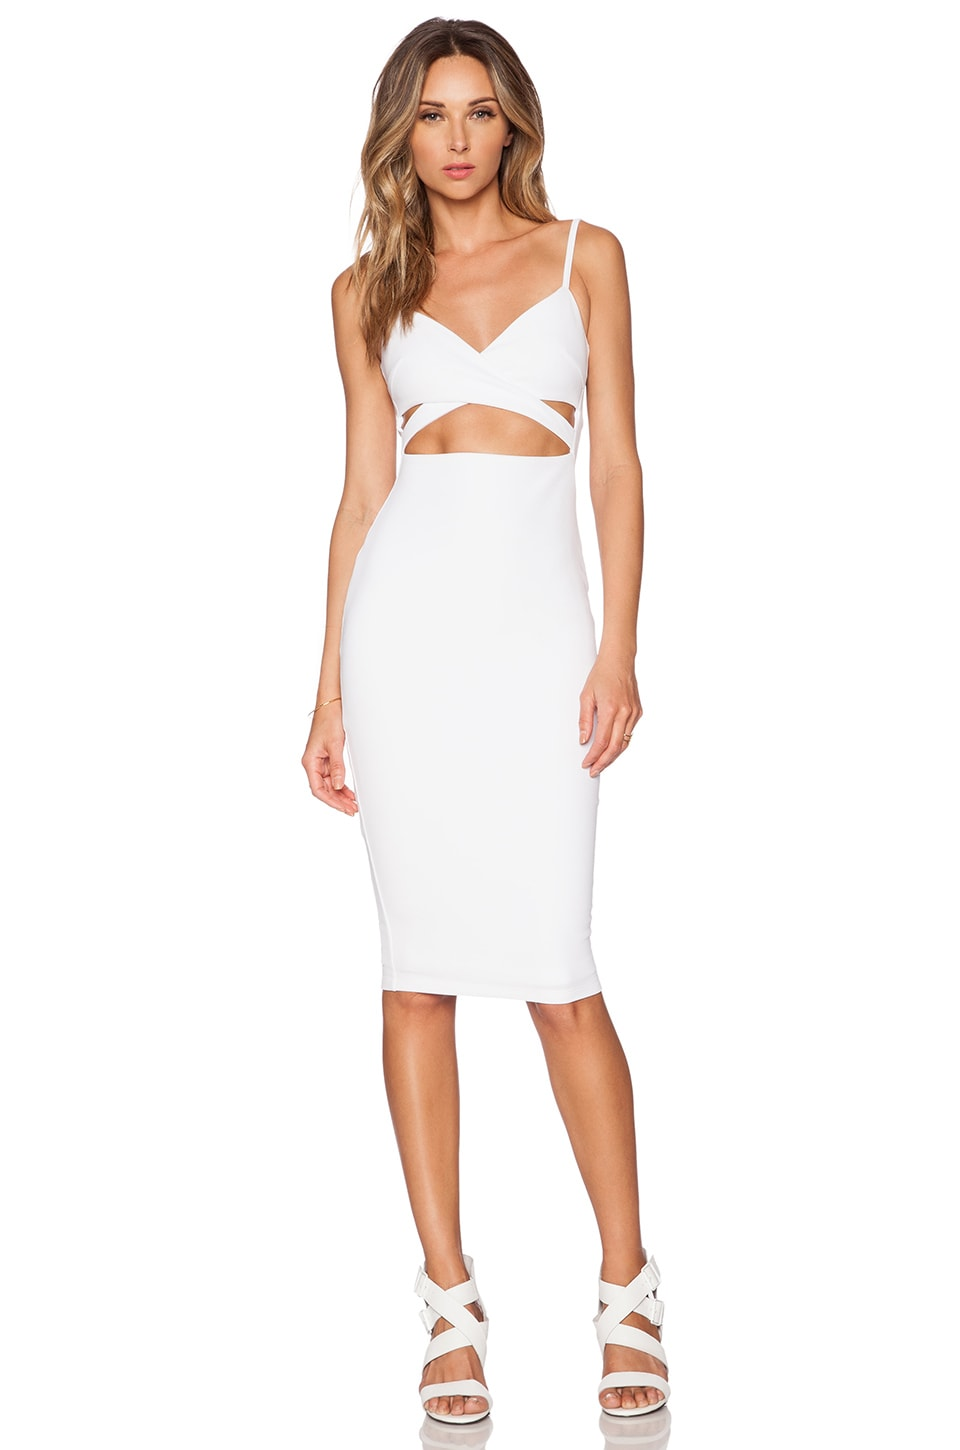 Nookie Heidi Bodycon Dress in White